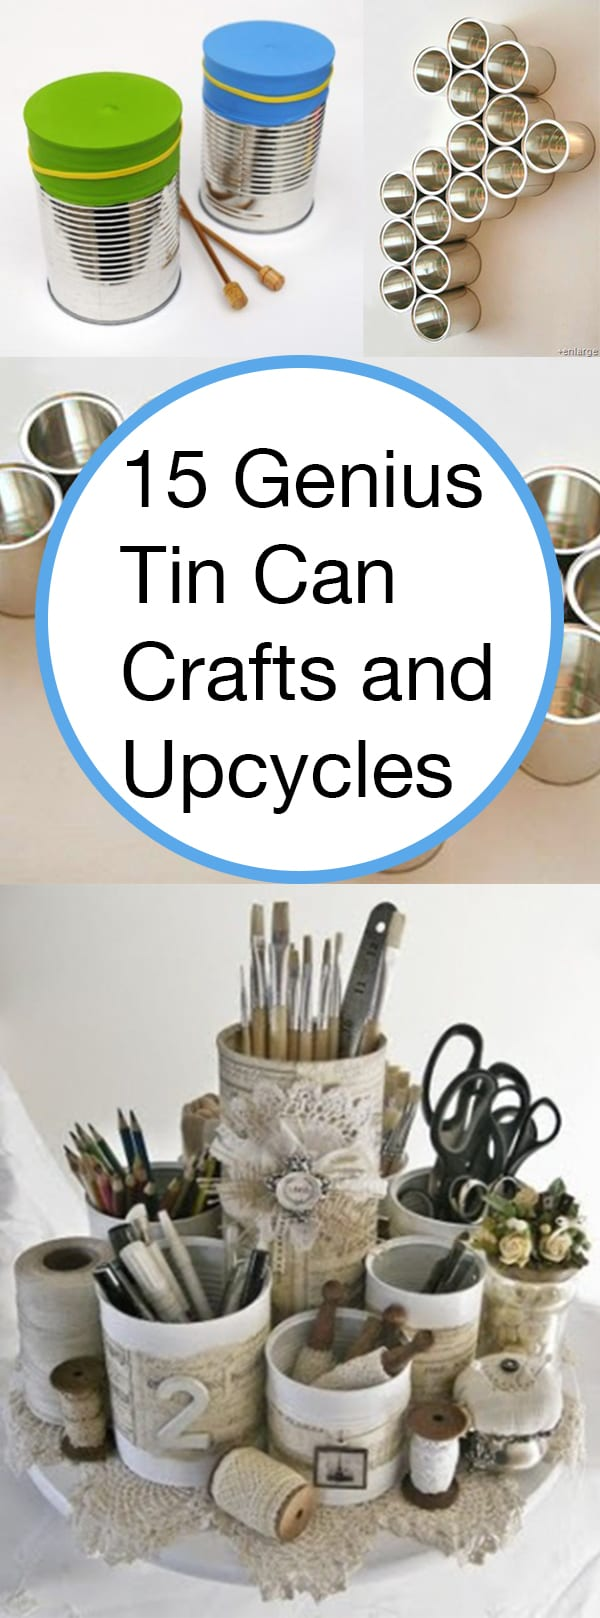 15 genius tin can crafts and upcycles for Tin cans for crafts